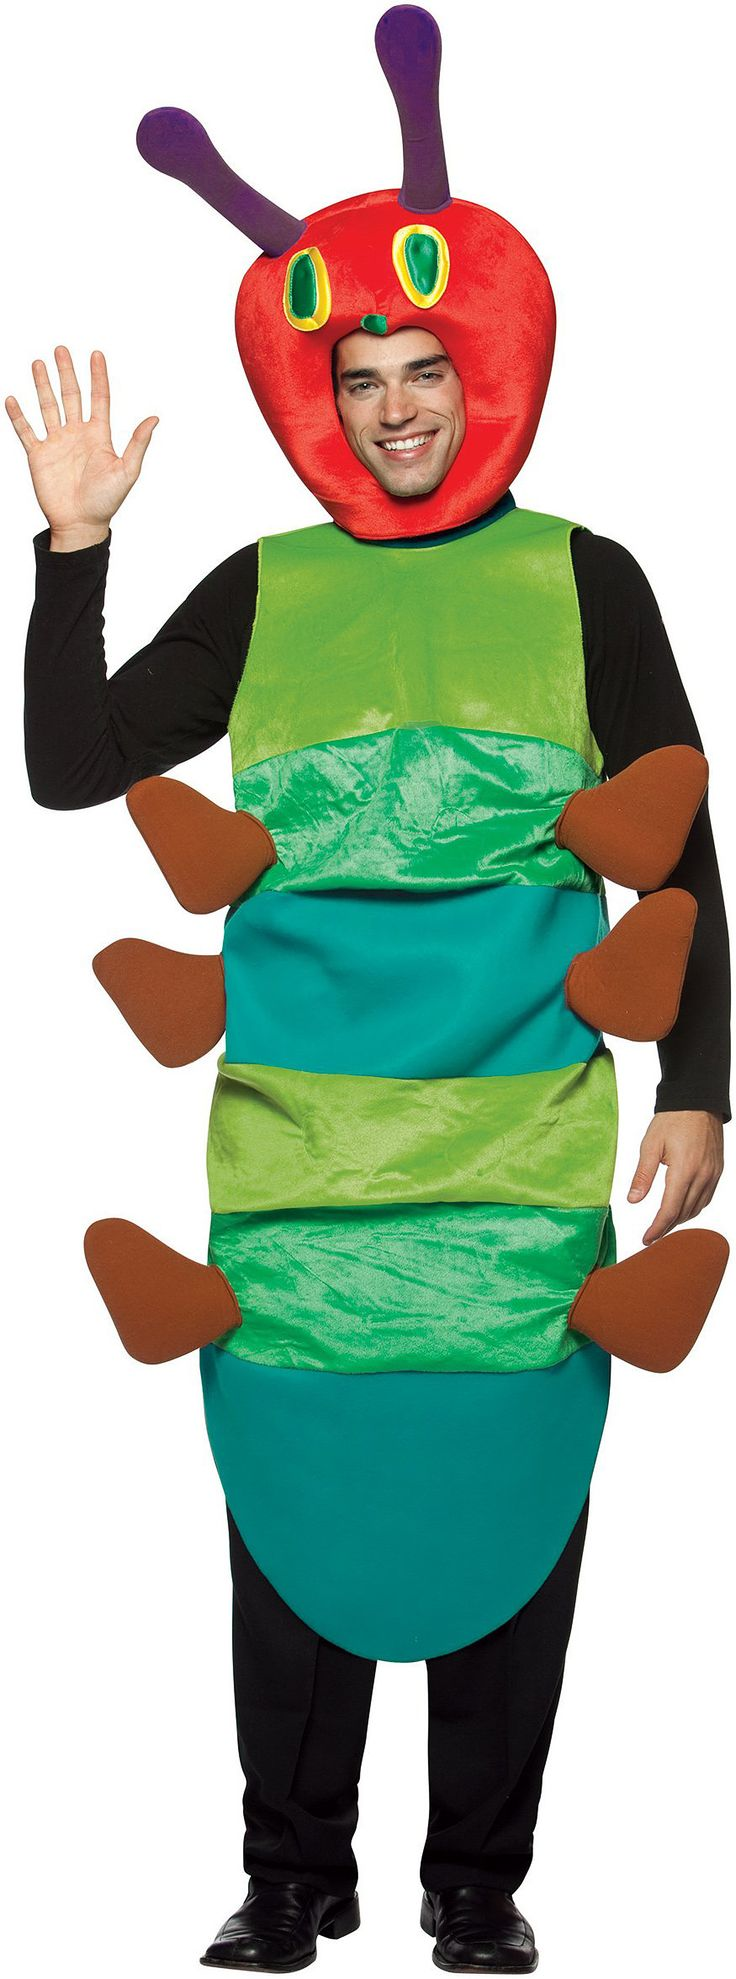 The World of Eric Carle The Very Hungry Caterpillar Deluxe Adult Costume | ThePartyWorks